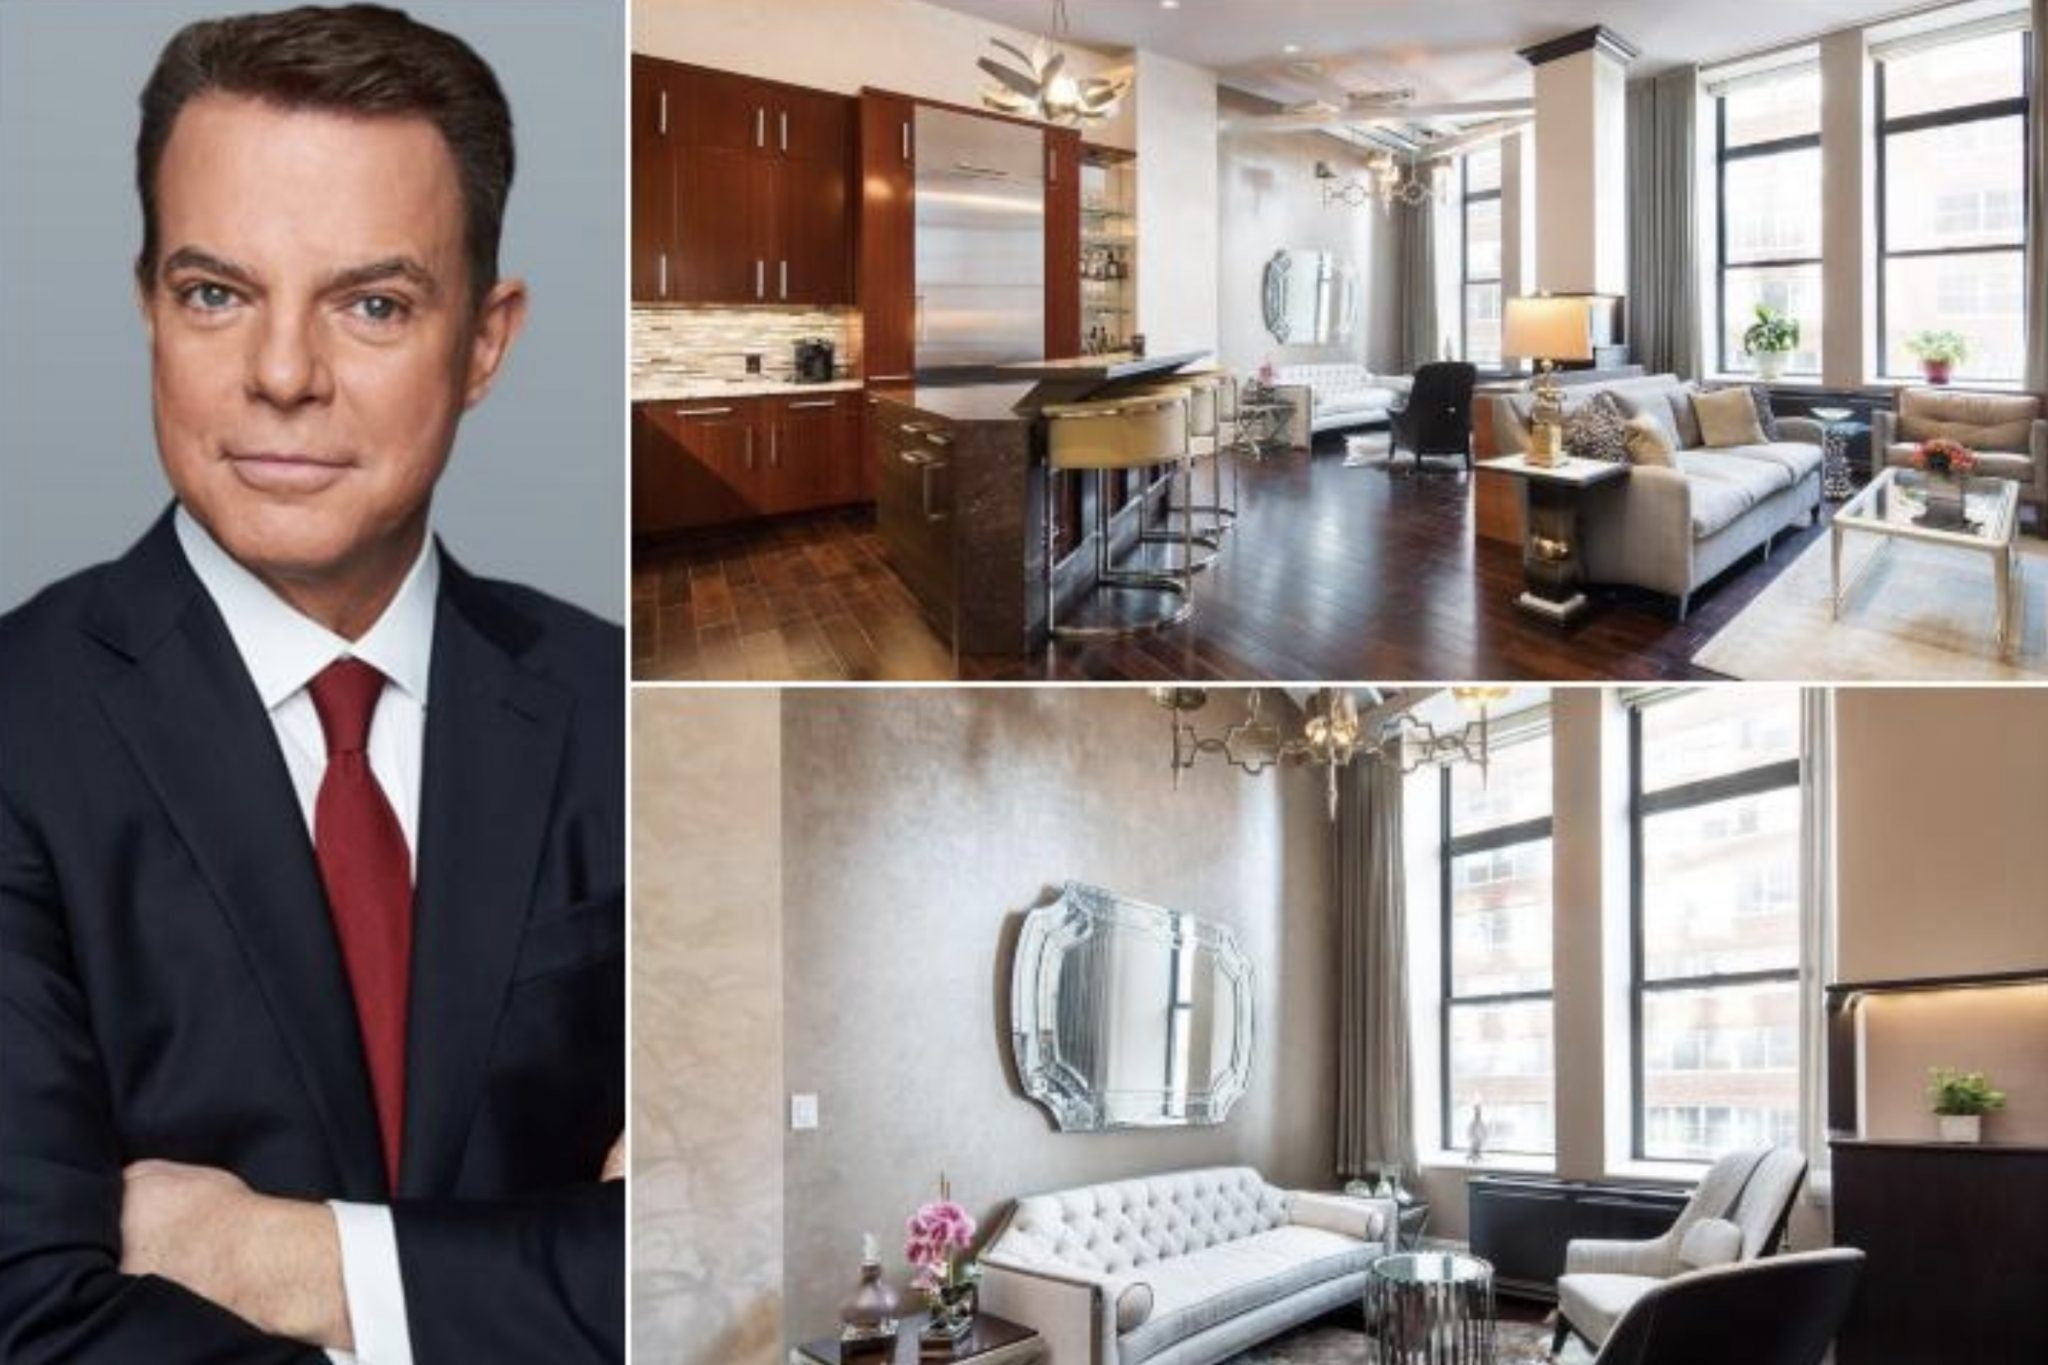 Shepard Smith's 3.9 Million Home In New York